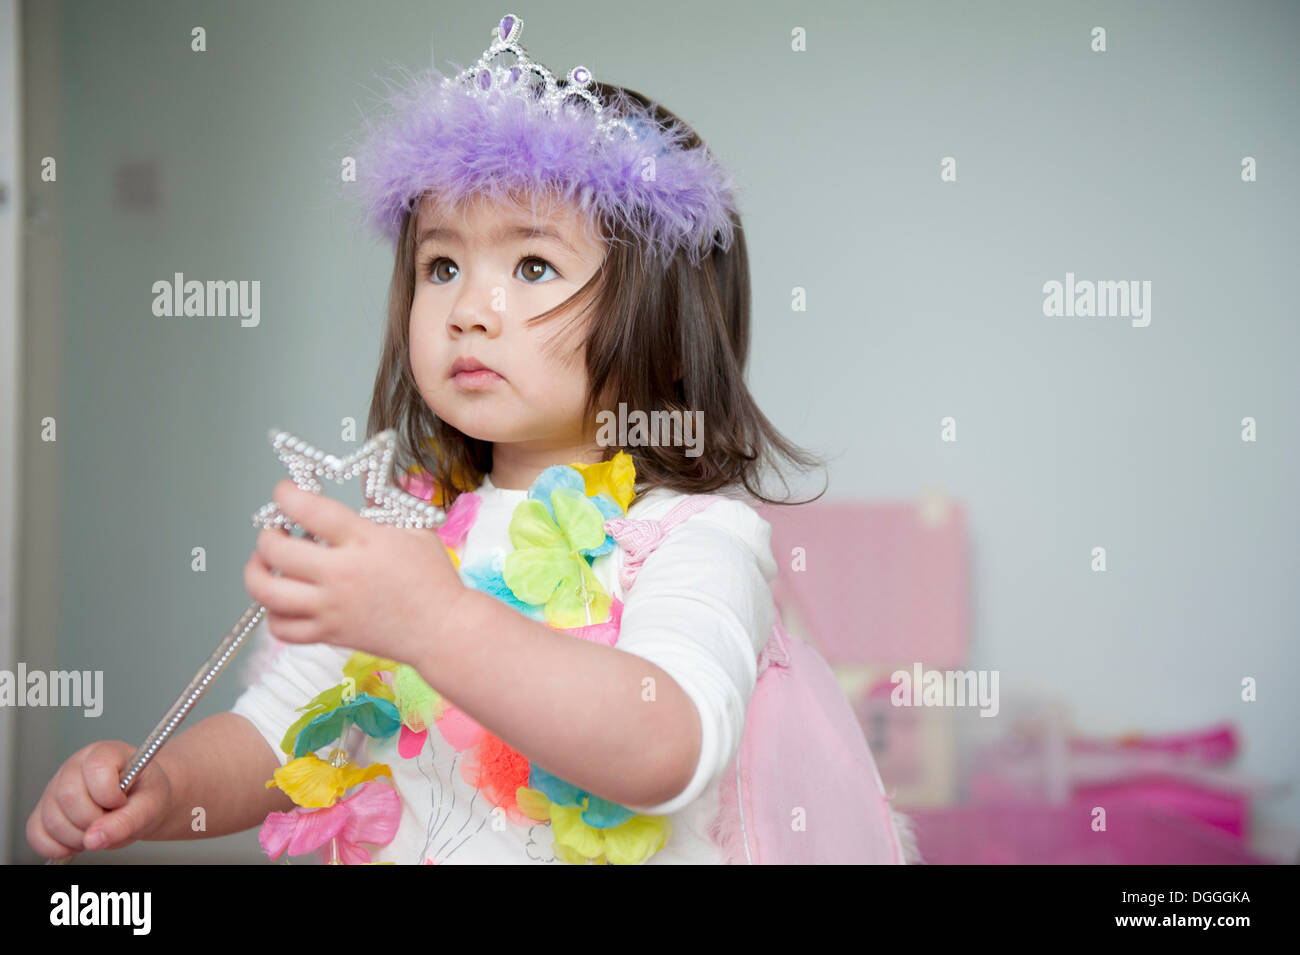 Girl in fairy costume holding magic wand - Stock Image